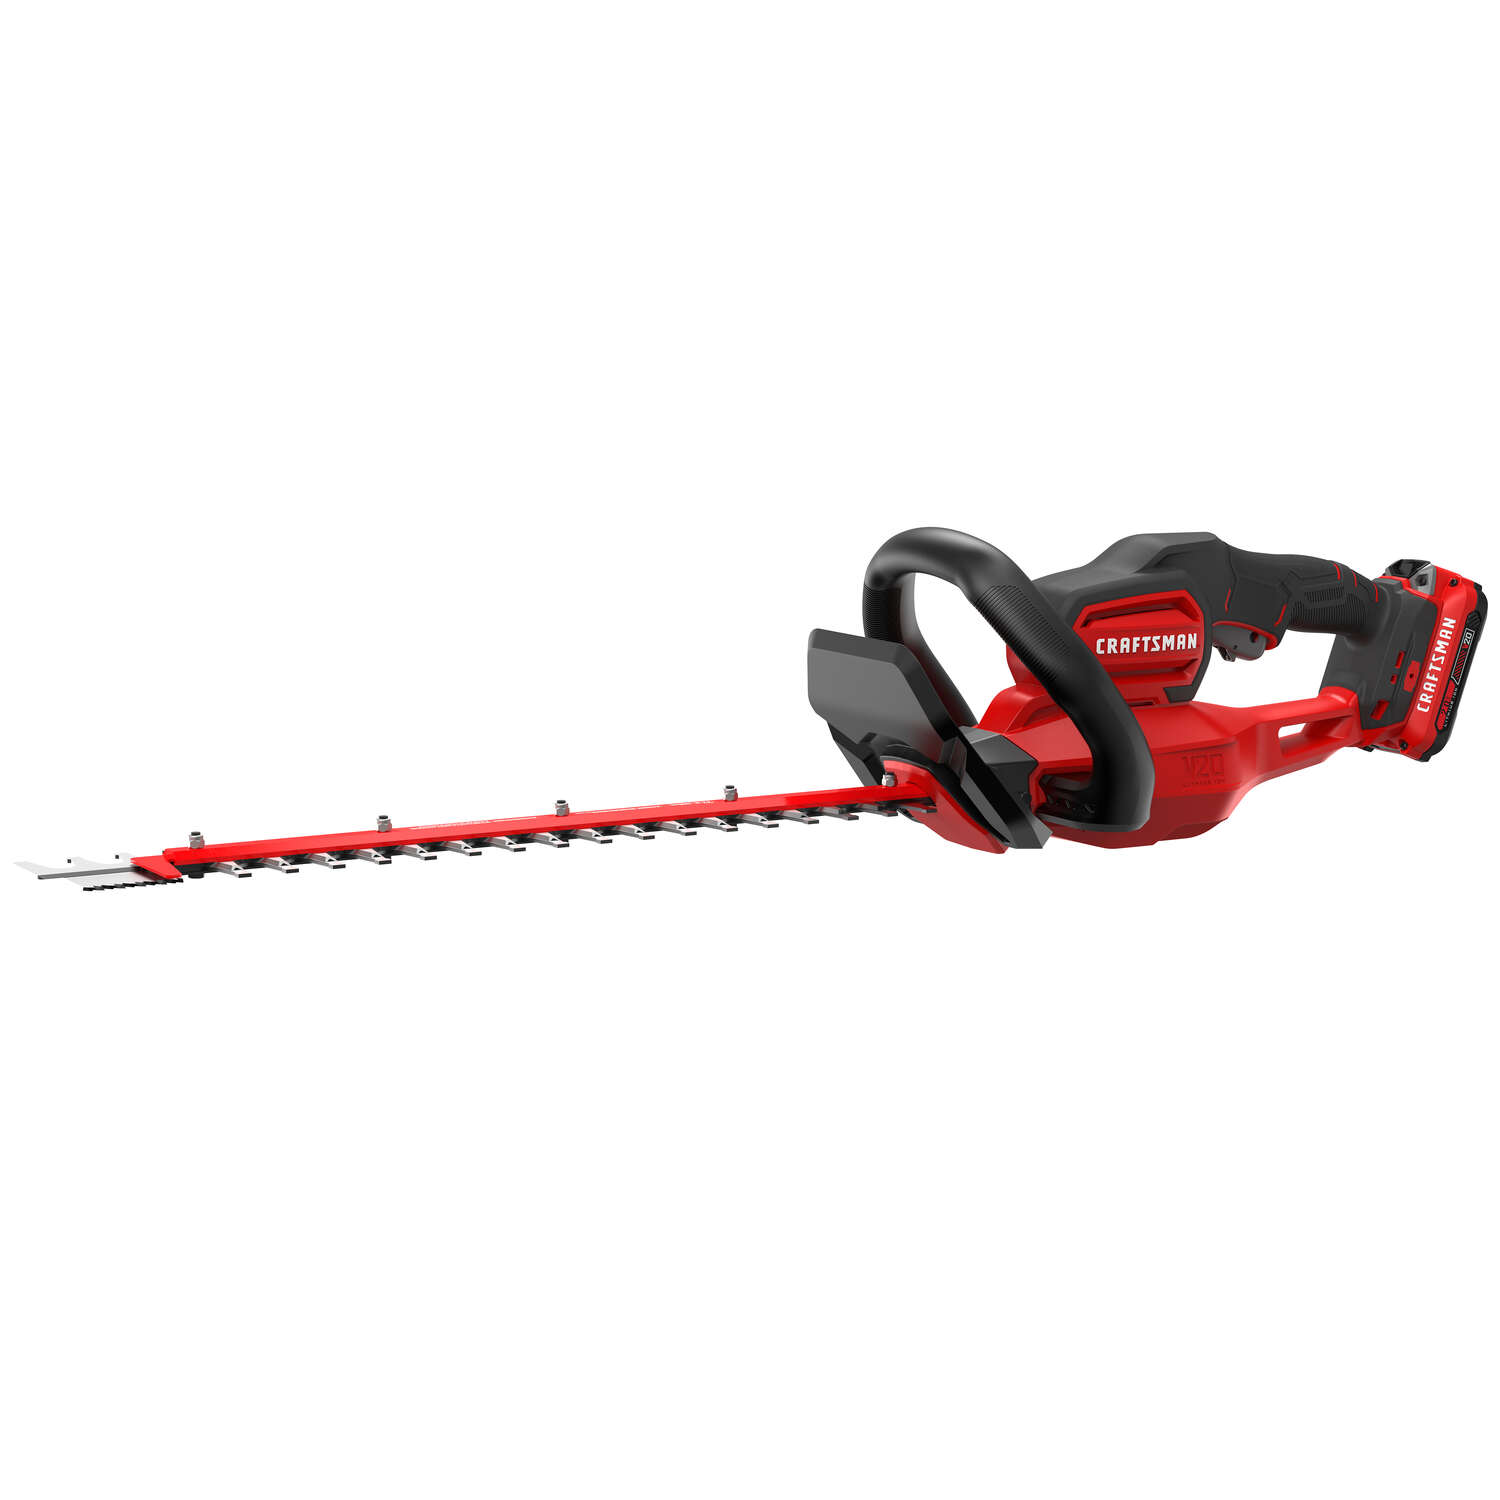 Craftsman 22 in. 20 volt Battery Hedge Trimmer Kit (Battery & Charger)